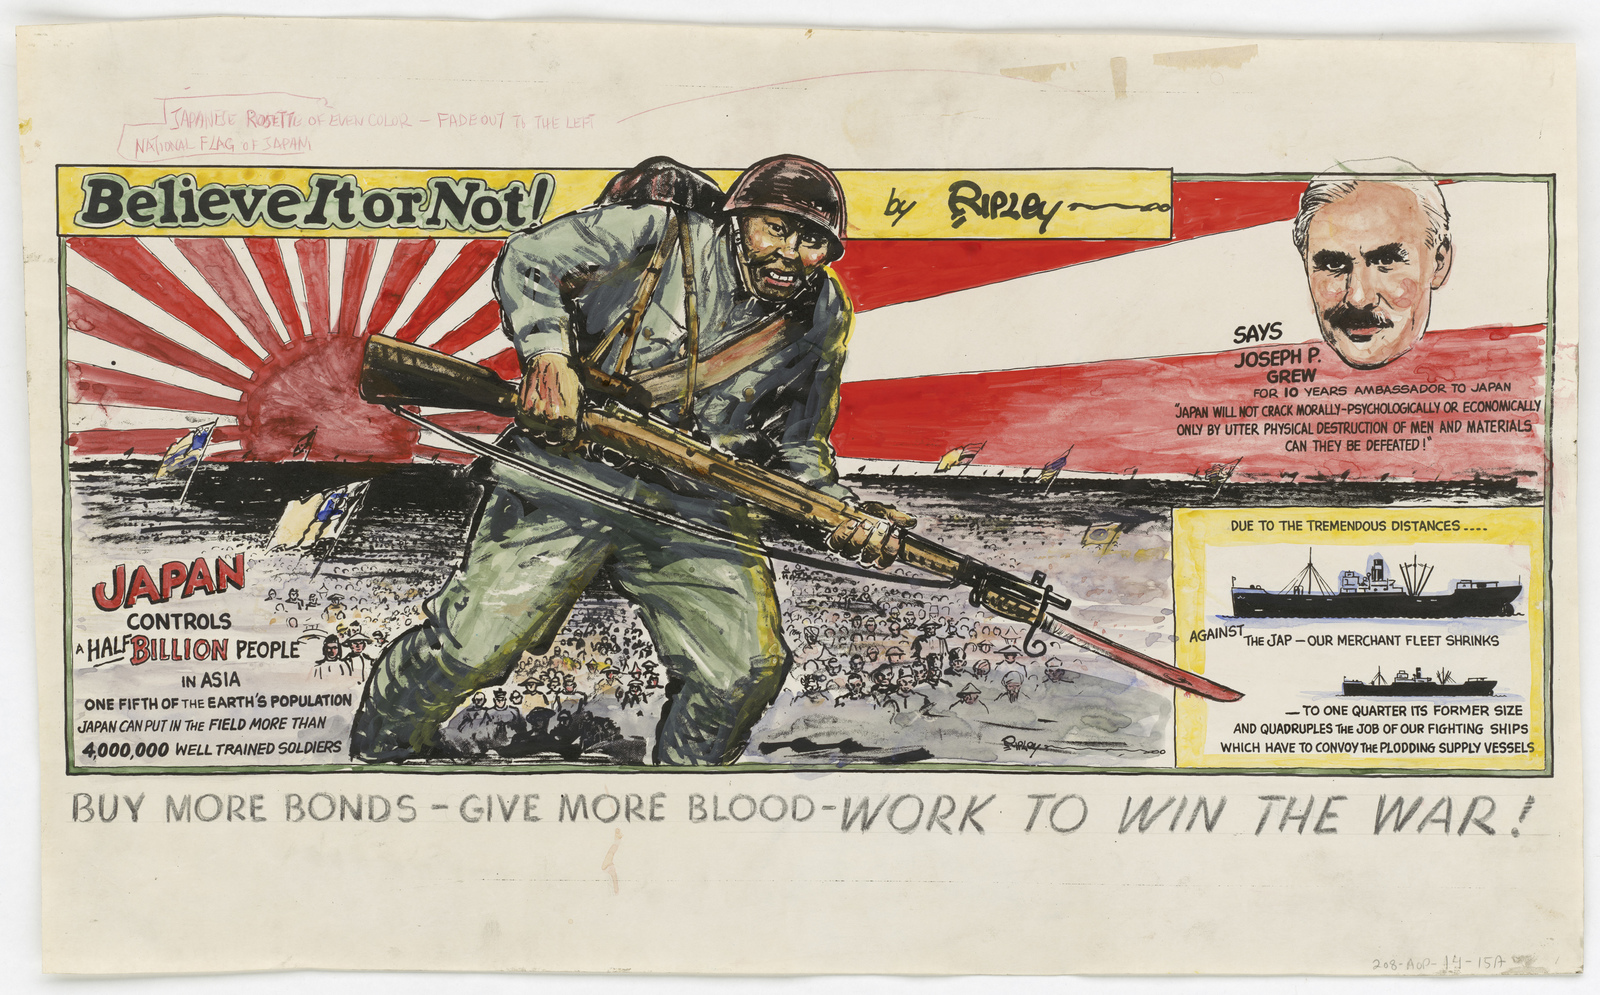 Believe It or Not!  by Ripley.  BUY MORE BONDS - GIVE MORE BLOOD  - WORK TO WIN THE WAR! (Information on back: War Loan Poster 6th War Loan This Space Contributed To The U.S. Treasury Department By The Transportation Advertising Industry) [Robert Ripley]